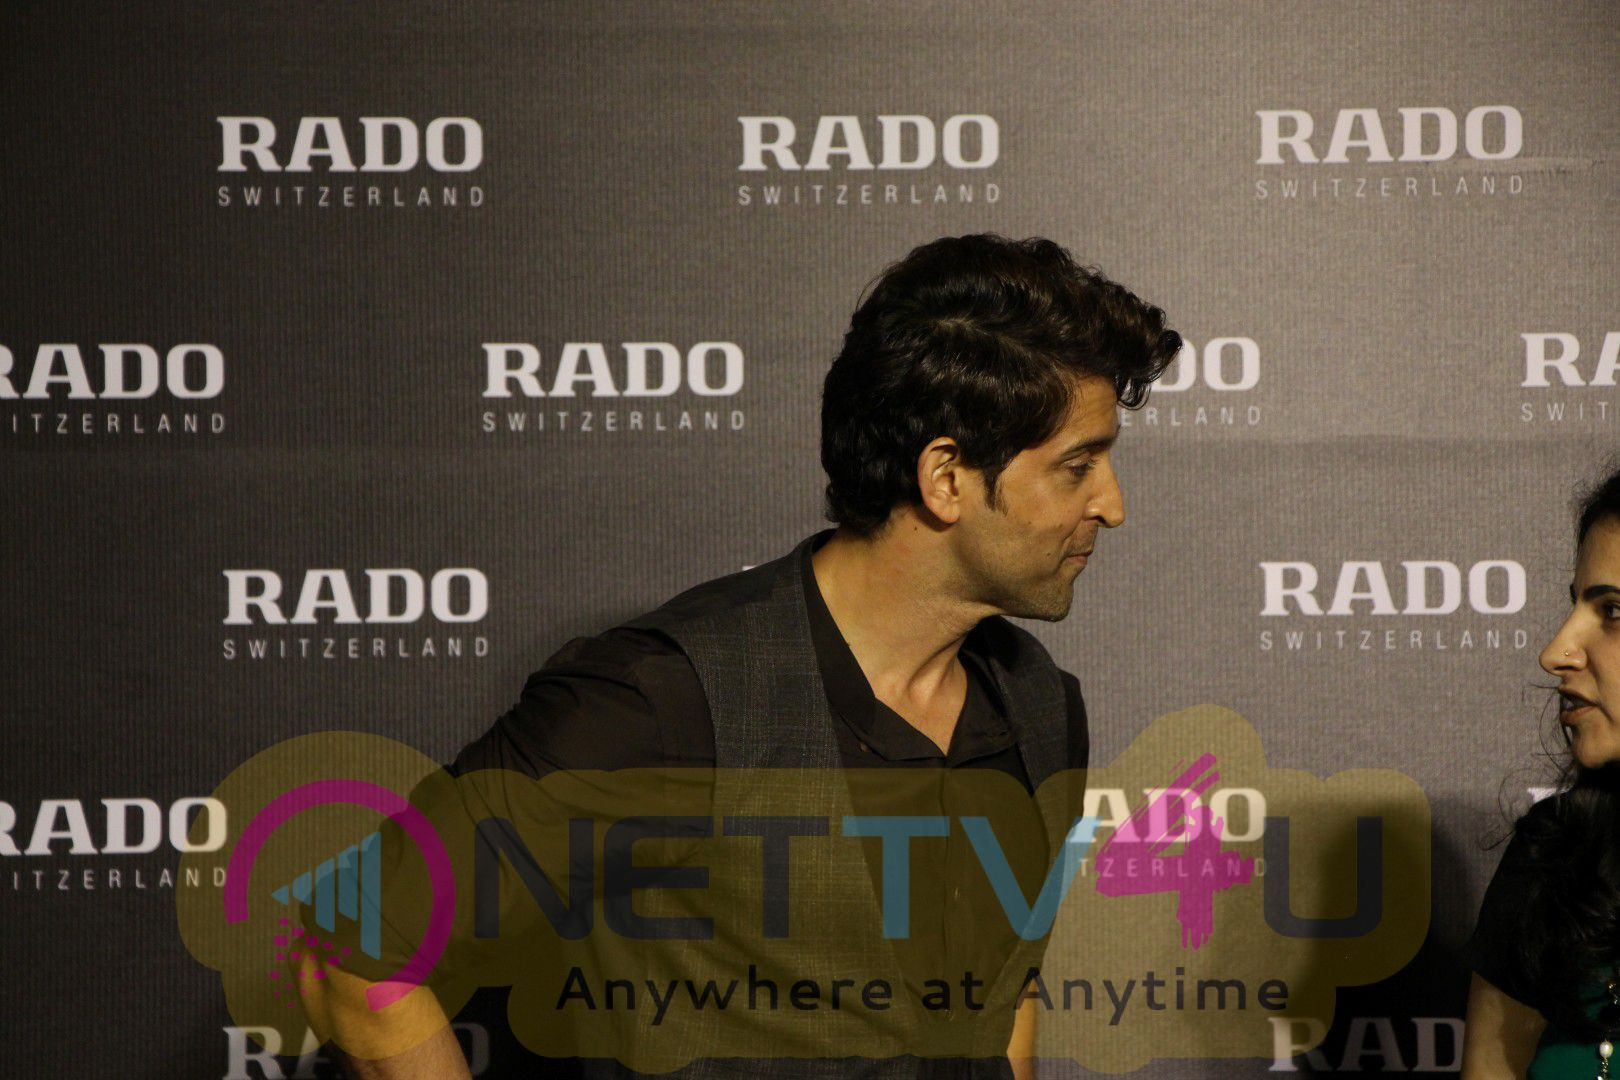 Photos Of Hrithik Roshan At Unveiling Of Swiss Delights For Rado A Luxury Watch Brand